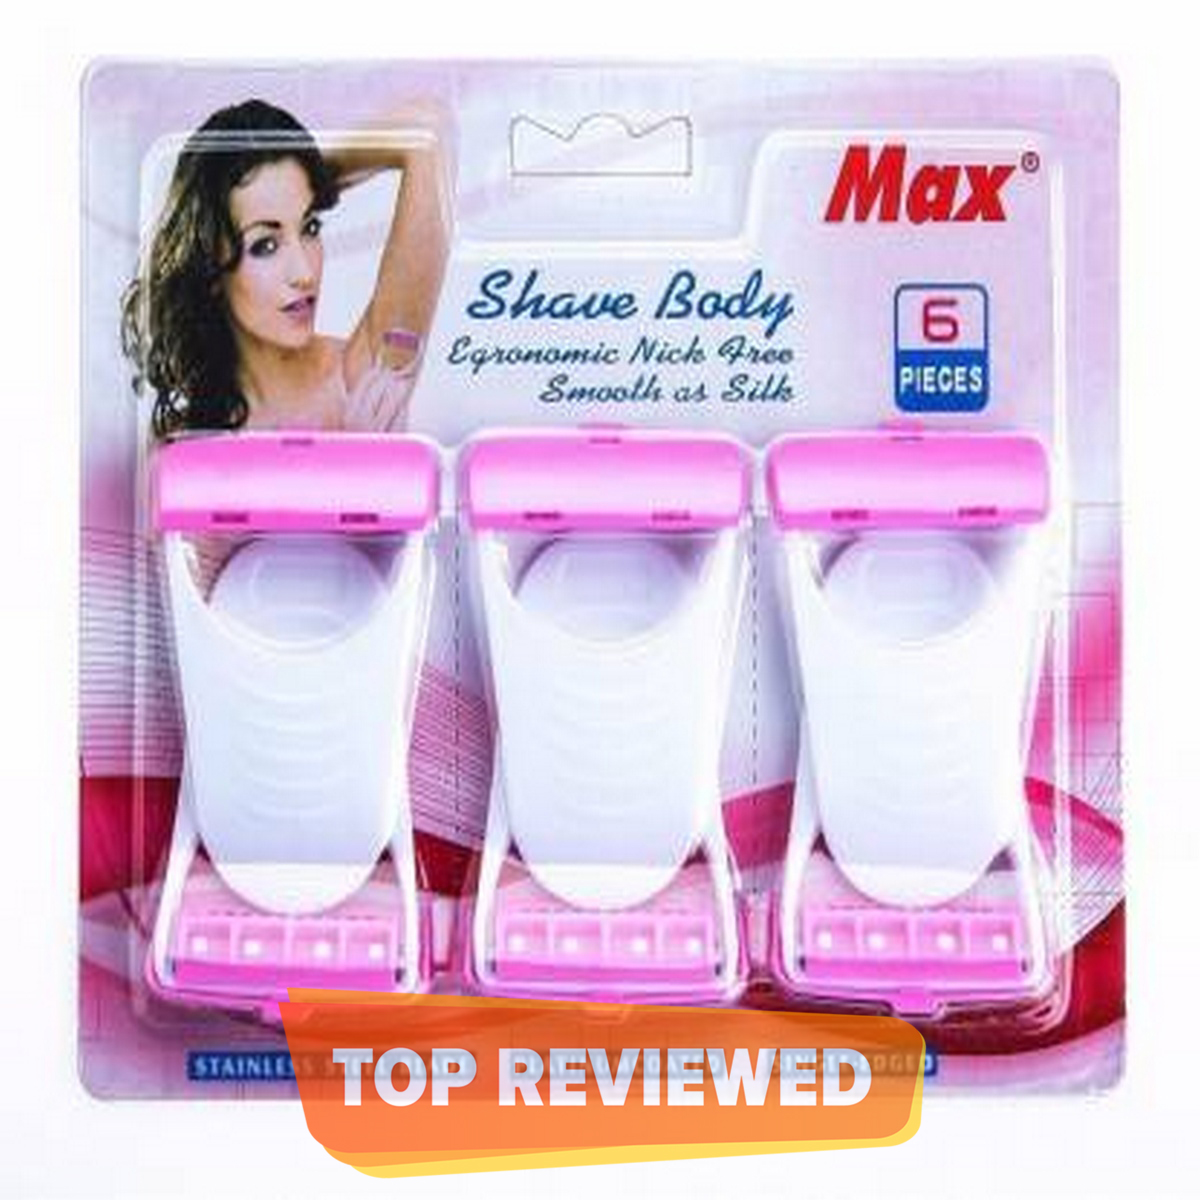 Pack of 6 Max Sofit Shave Body Disposable Safety Razor/Razer/Blade For Women